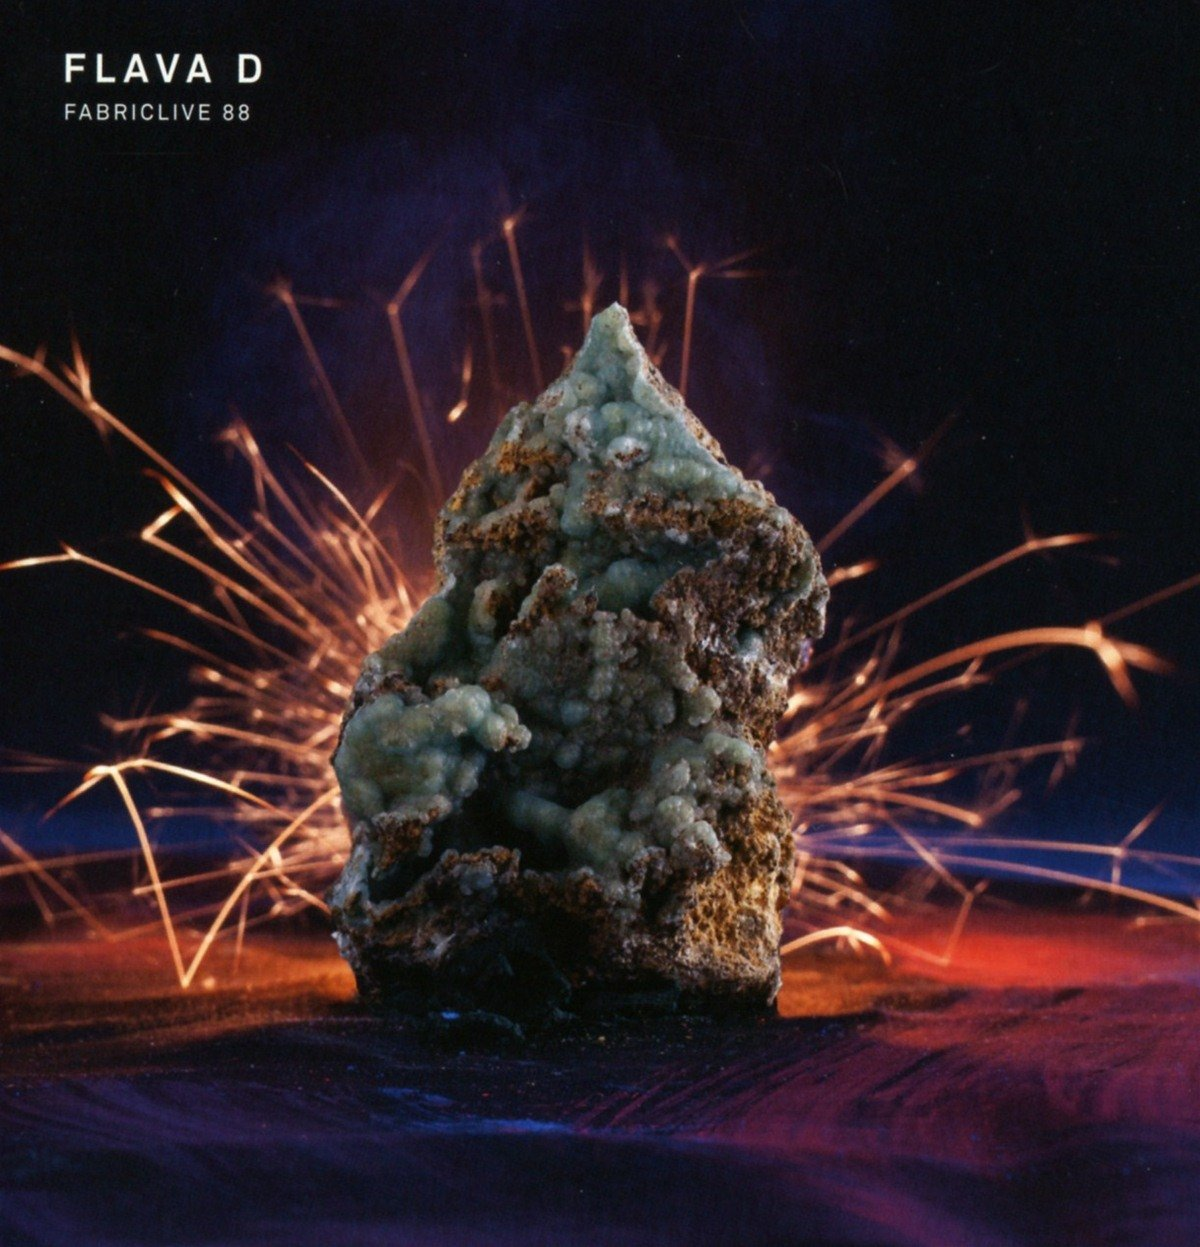 Fabriclive 88